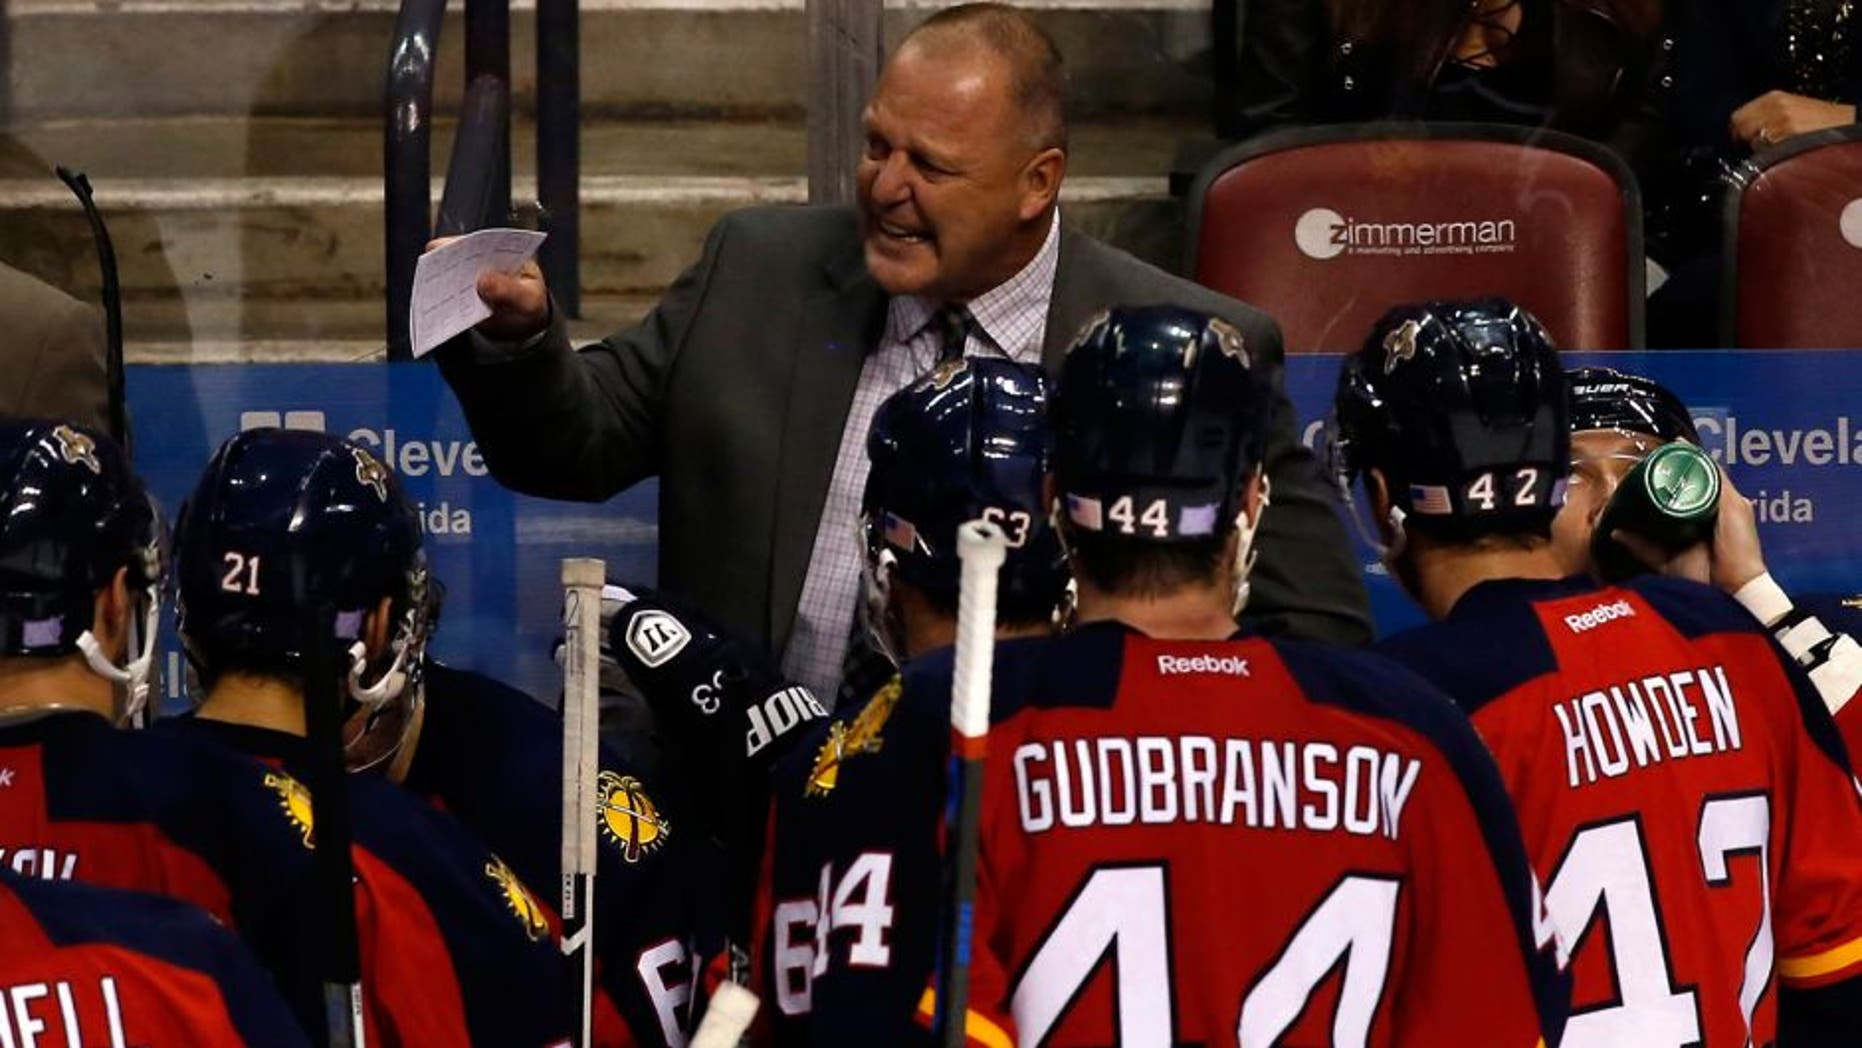 Nov 10, 2015; Sunrise, FL, USA; Florida Panthers head coach Gerard Gallant talks to the team in the third period of a game against the Calgary Flames at BB&T Center. The Panthers won 4-3. Mandatory Credit: Robert Mayer-USA TODAY Sports